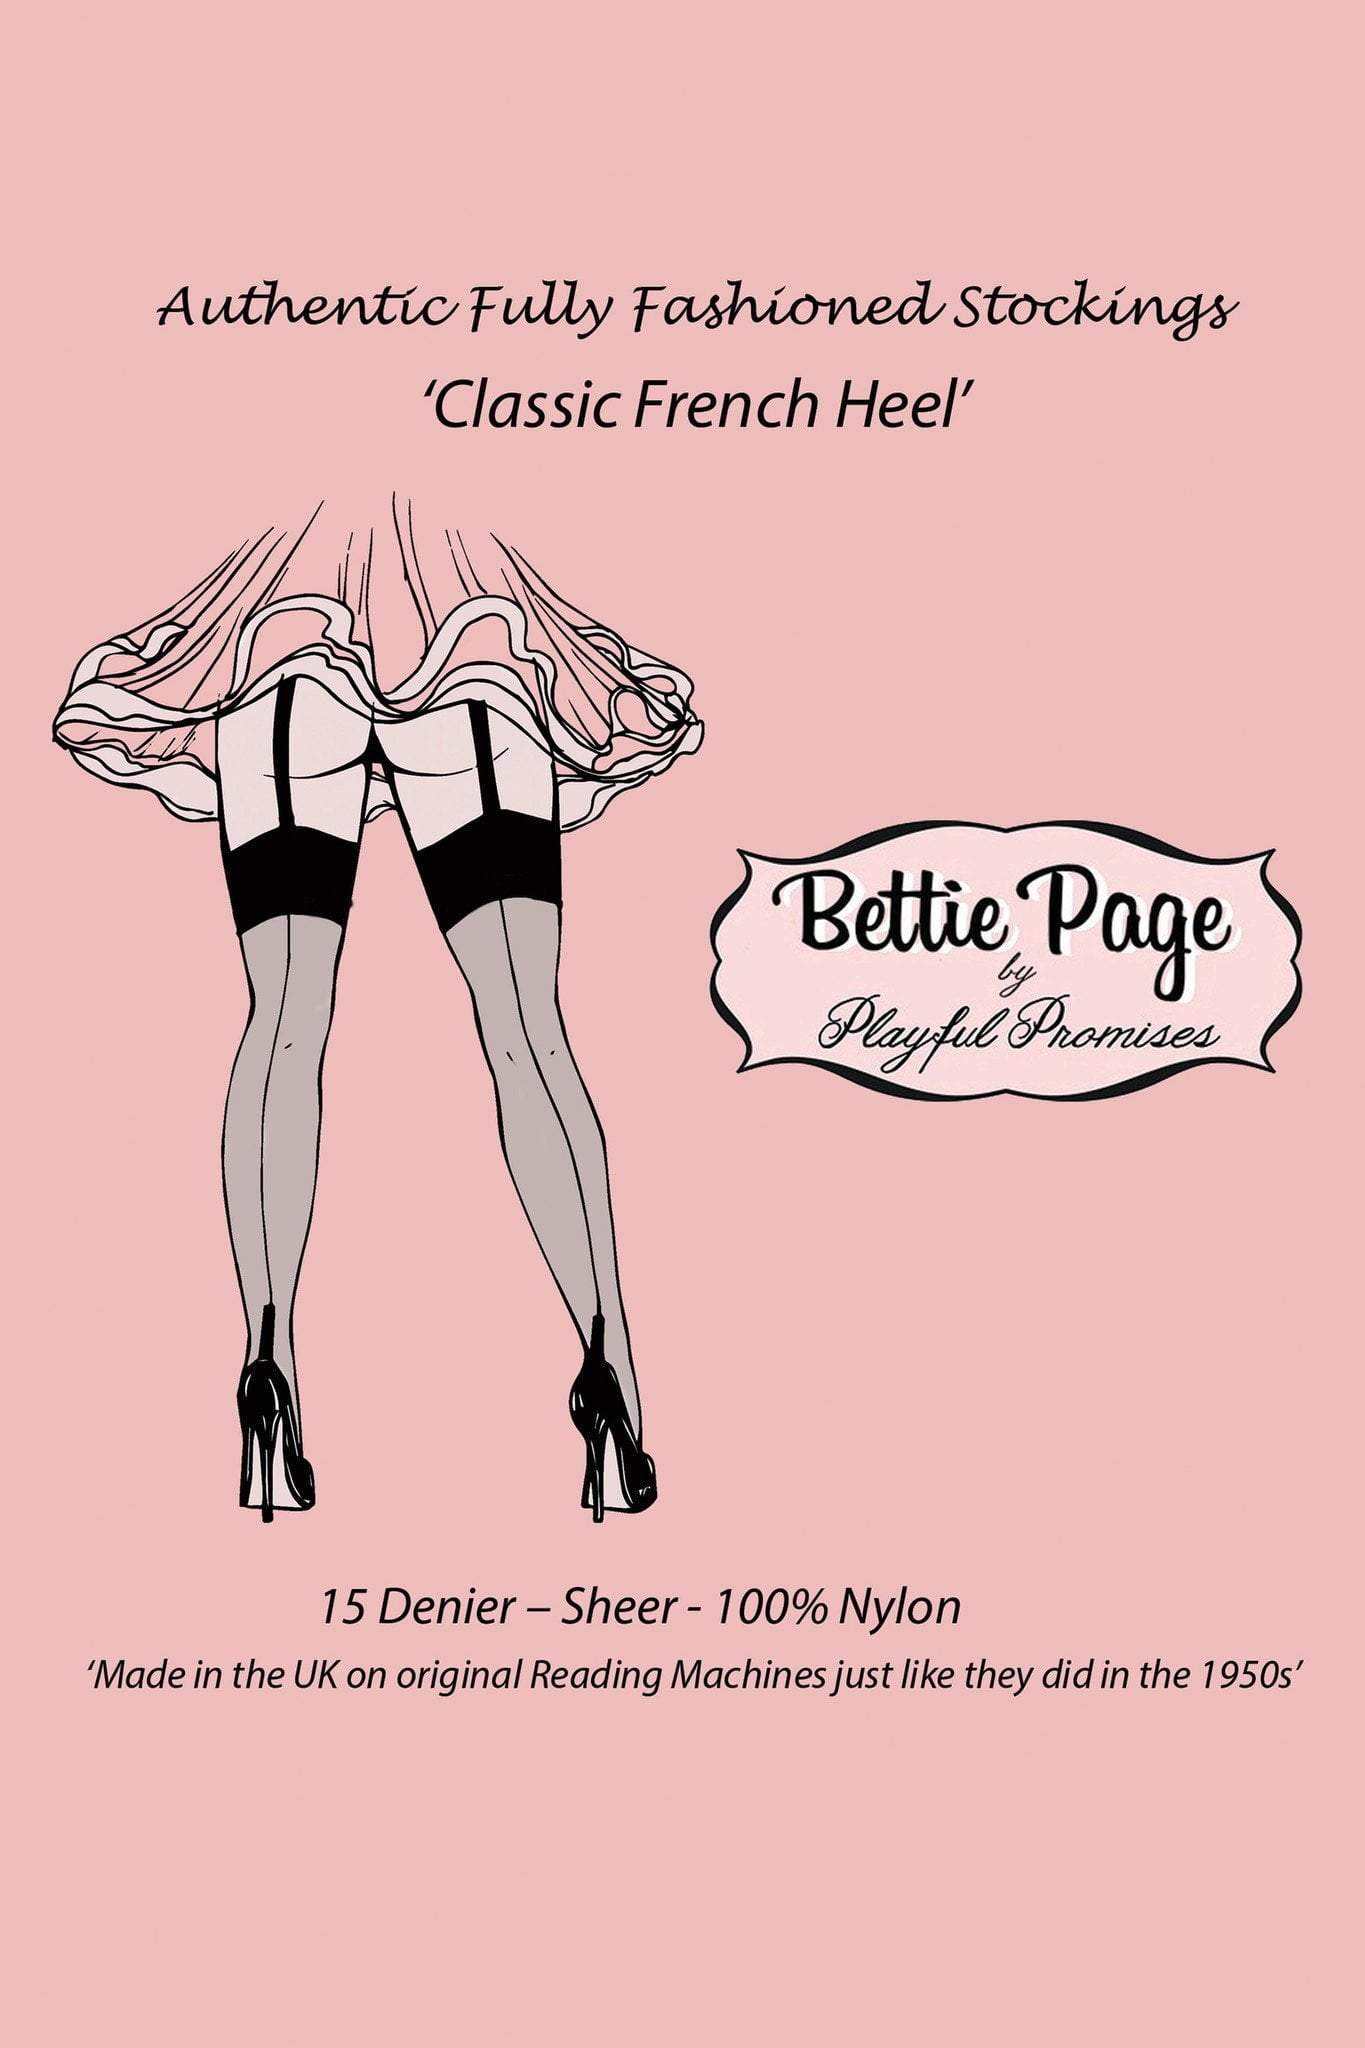 e3a8ab189c1 Bettie Page Fully Fashioned Nylon Point Heel Stockings - Black ...